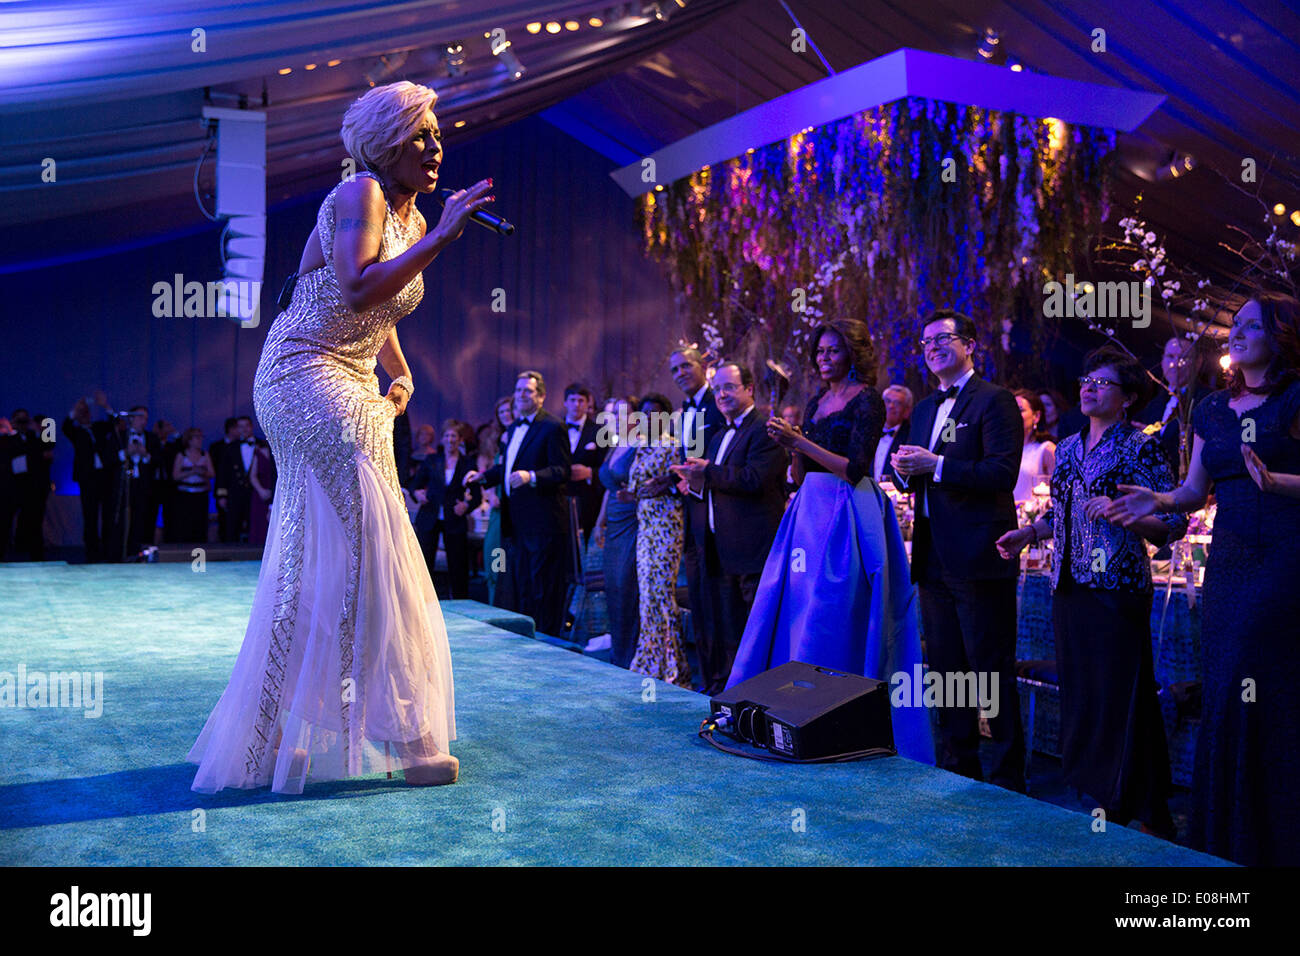 US President Barack Obama, President François Hollande of France, First Lady Michelle Obama and guests watch performer Mary J. Blige during the State Dinner for President Hollande on the South Lawn of the White House February 11, 2014 in Washington, DC. - Stock Image